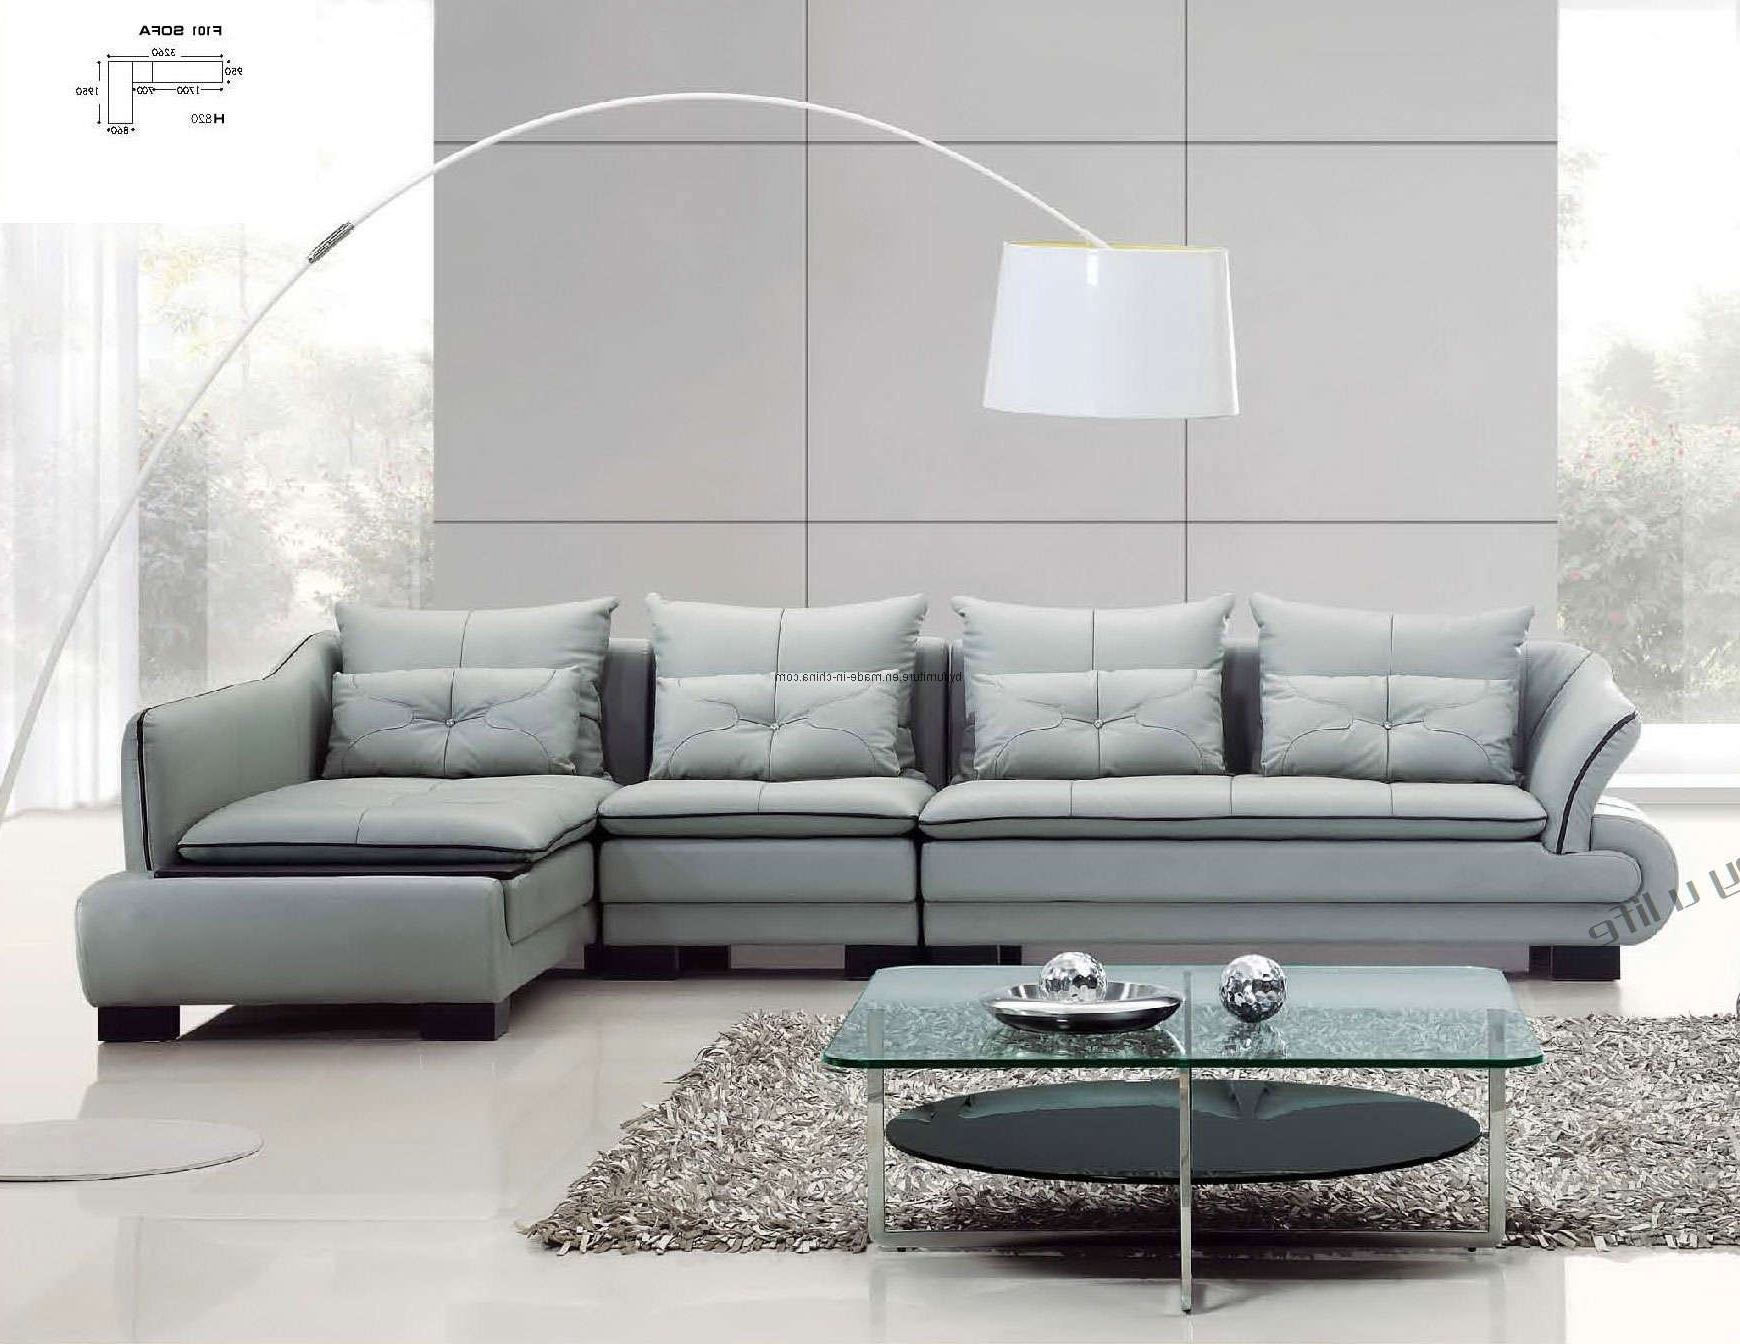 Contemporary Sofa Chairs For Best And Newest Sofa: Remarkable Contemporary Sofa Set Best Contemporary Sofas (View 5 of 15)